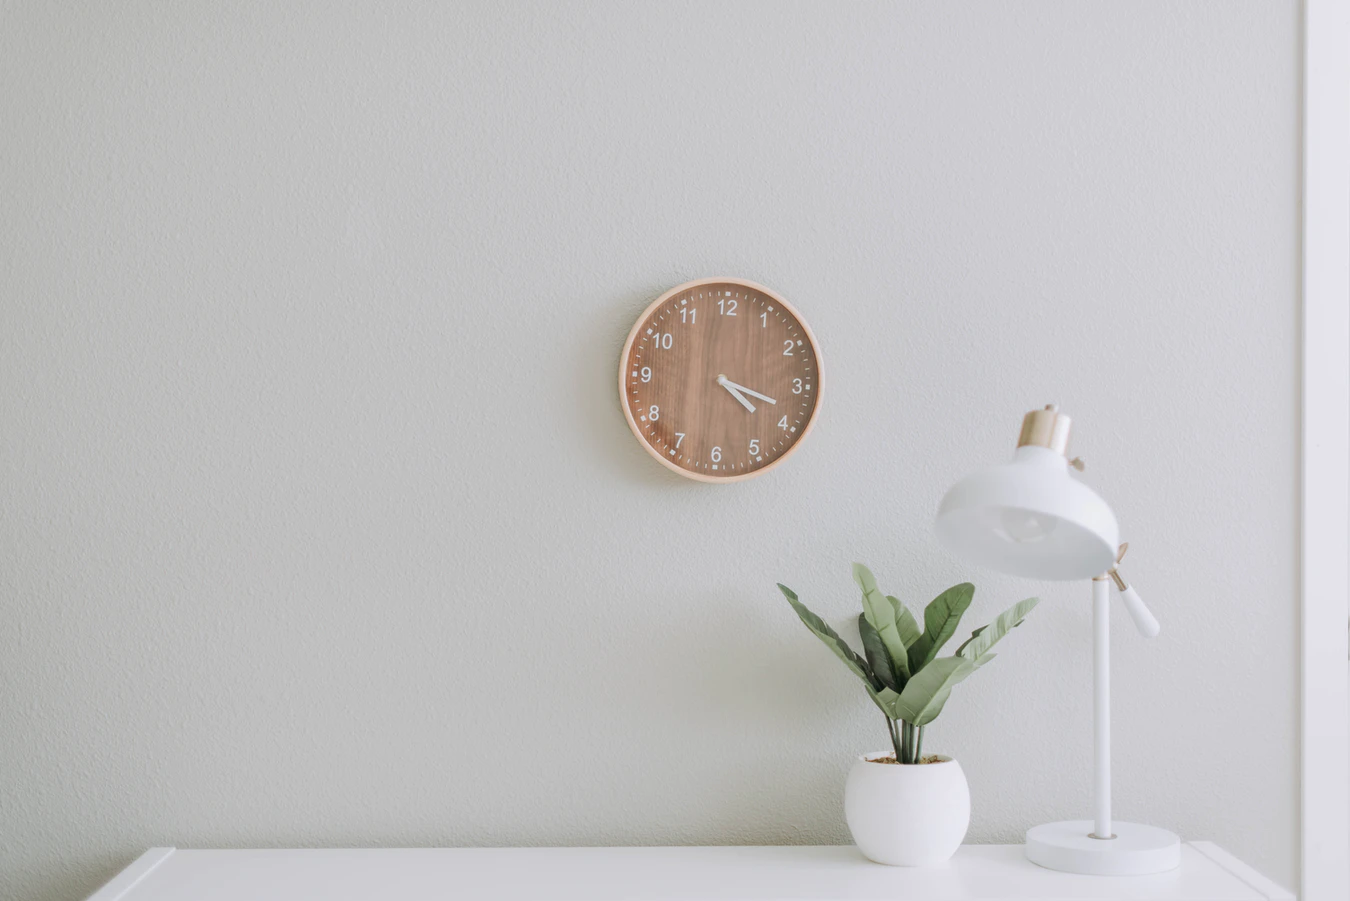 plain wall with clock and plant on desk